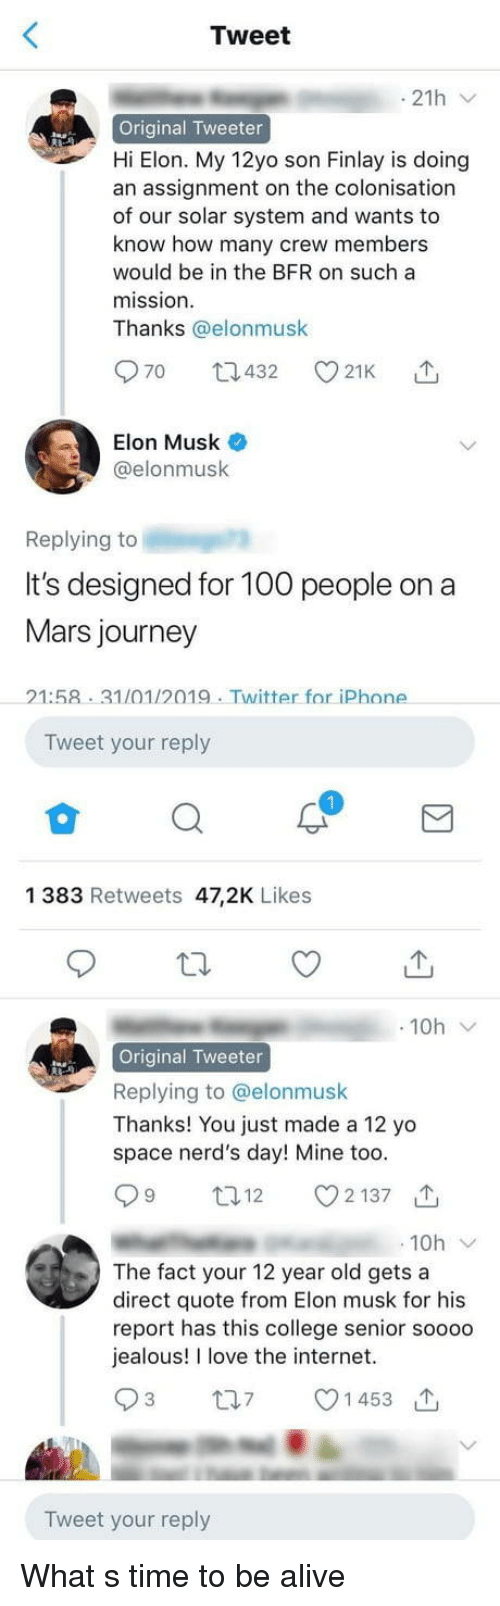 Alive, Anaconda, and College: Tweet  Original Tweeter  Hi Elon. My 12yo son Finlay is doing  an assignment on the colonisation  of our solar system and wants to  know how many crew members  would be in the BFR on such a  mission  Thanks @elonmusk  Elon Musk  @elonmusk  Replying to  It's designed for 100 people on a  Mars journey  21:58 31/01/2019. Twitter for iPhone  Tweet your reply  1 383 Retweets 47,2K Likes  t  で  10h  Original Tweeter  Replying to @elonmusk  Thanks! You just made a 12 yo  space nerd's day! Mine too.  12 2137  10h  The fact your 12 year old gets a  direct quote from Elon musk for his  report has this college senior soooo  jealous! I love the internet.  1 453  Tweet your reply What s time to be alive